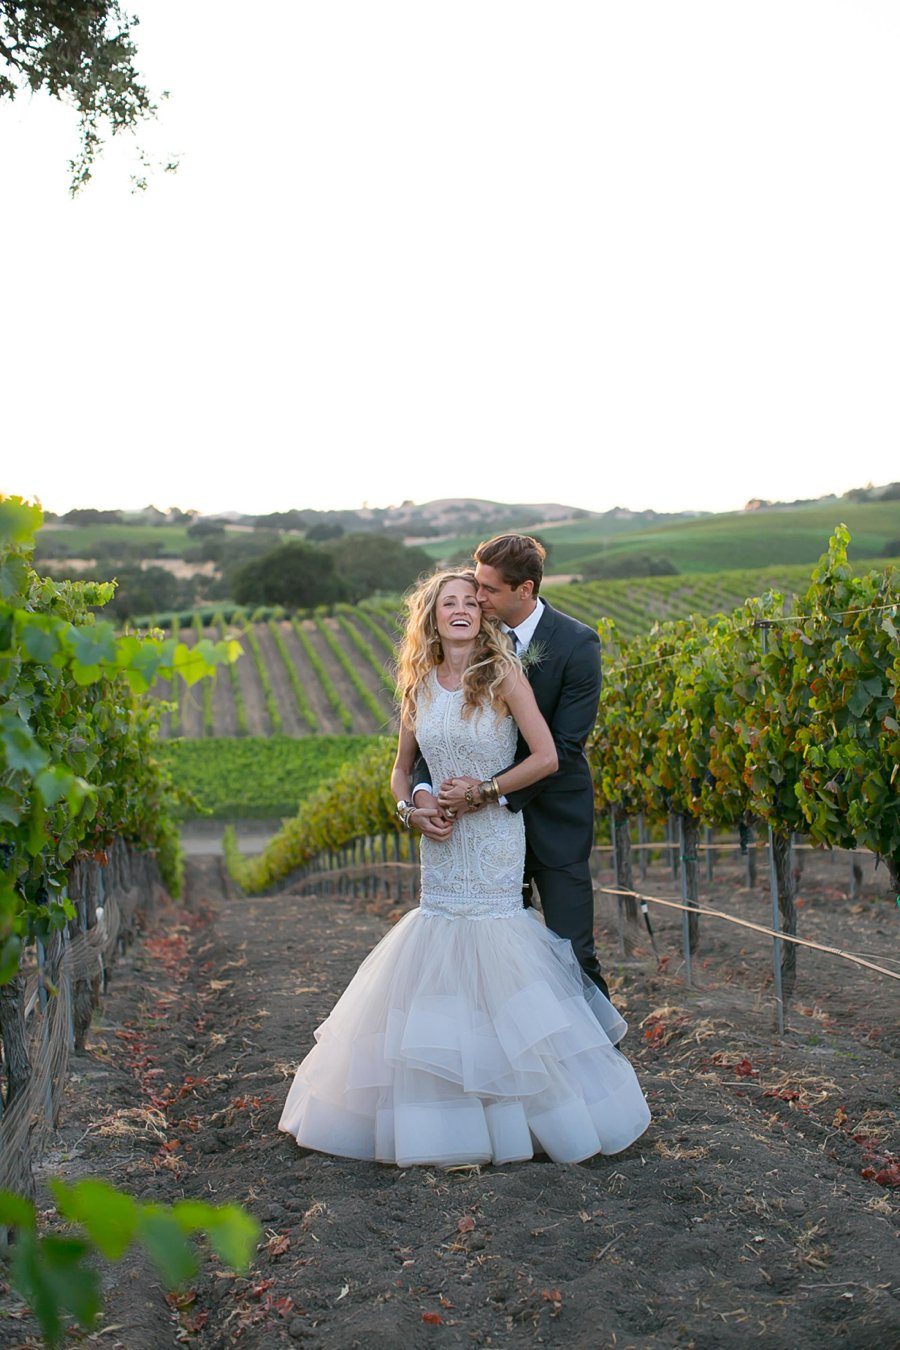 STOLPMANN VILLA AND VINEYARDS | LOS OLIVOS WEDDING PHOTOGRAPHER CHRIS HOLT PHOTOGRAPHY_065.jpg